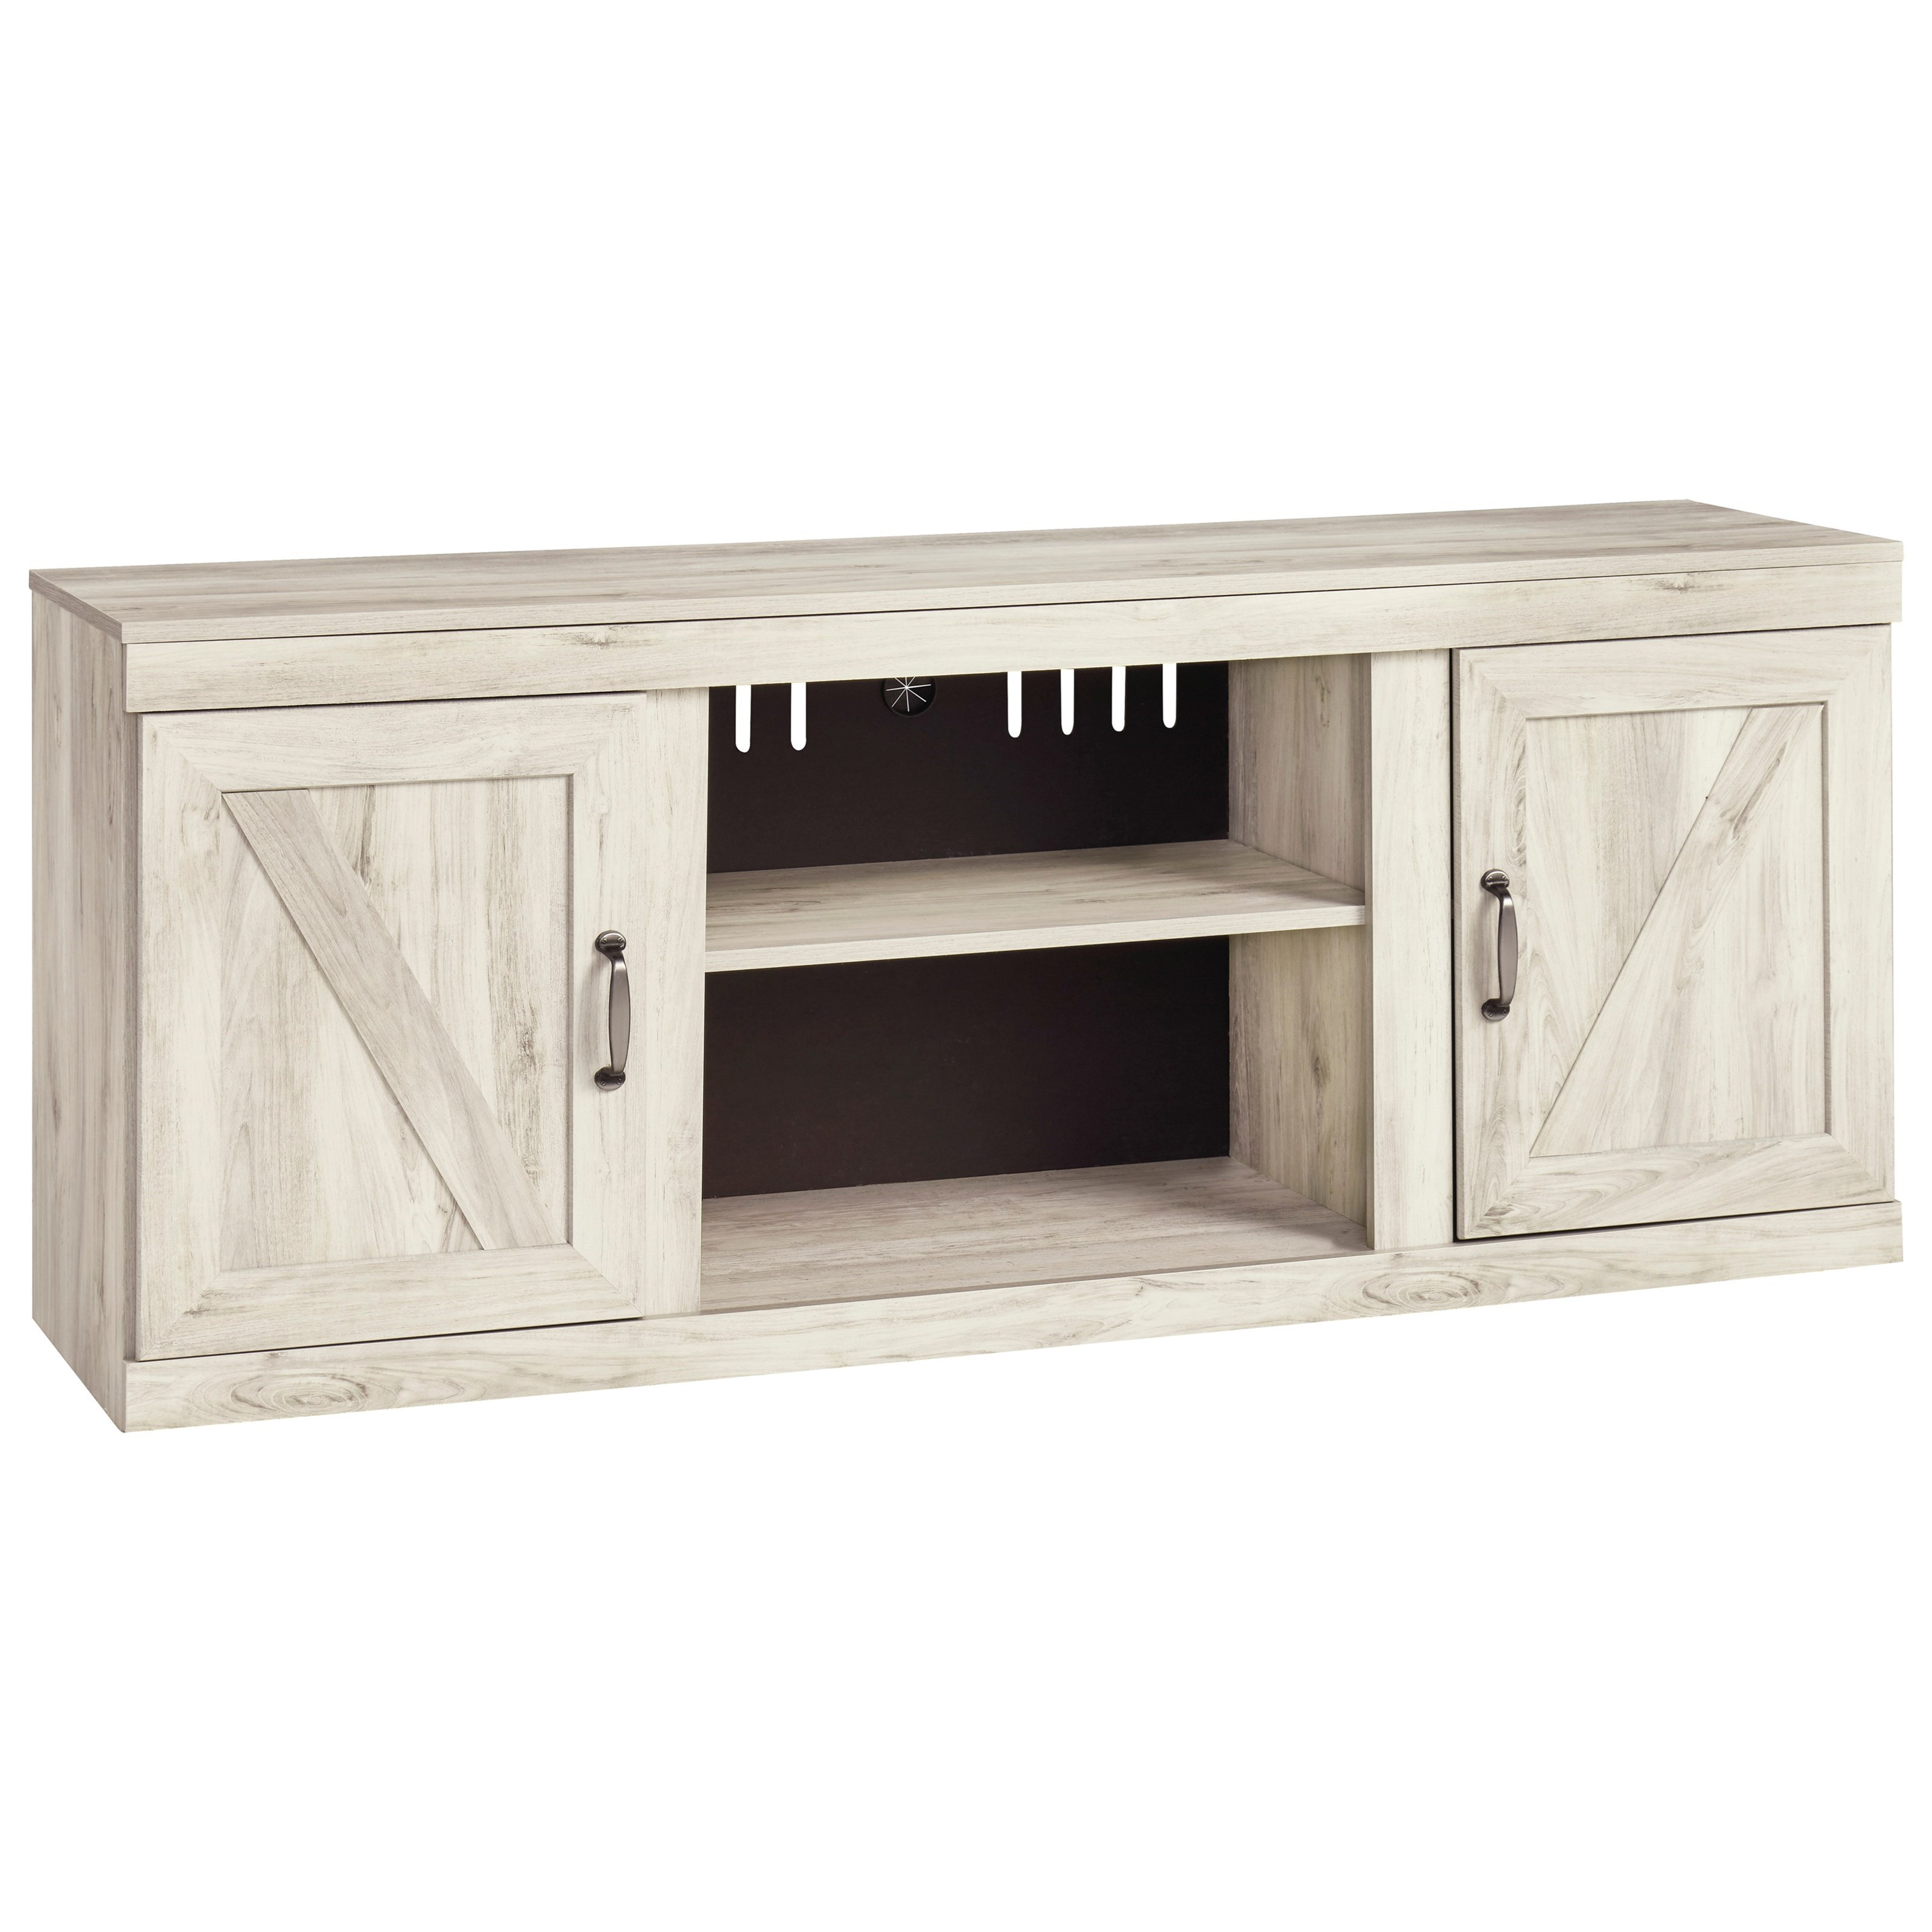 Bellaby TV Stand by Signature Design by Ashley at Zak's Warehouse Clearance Center